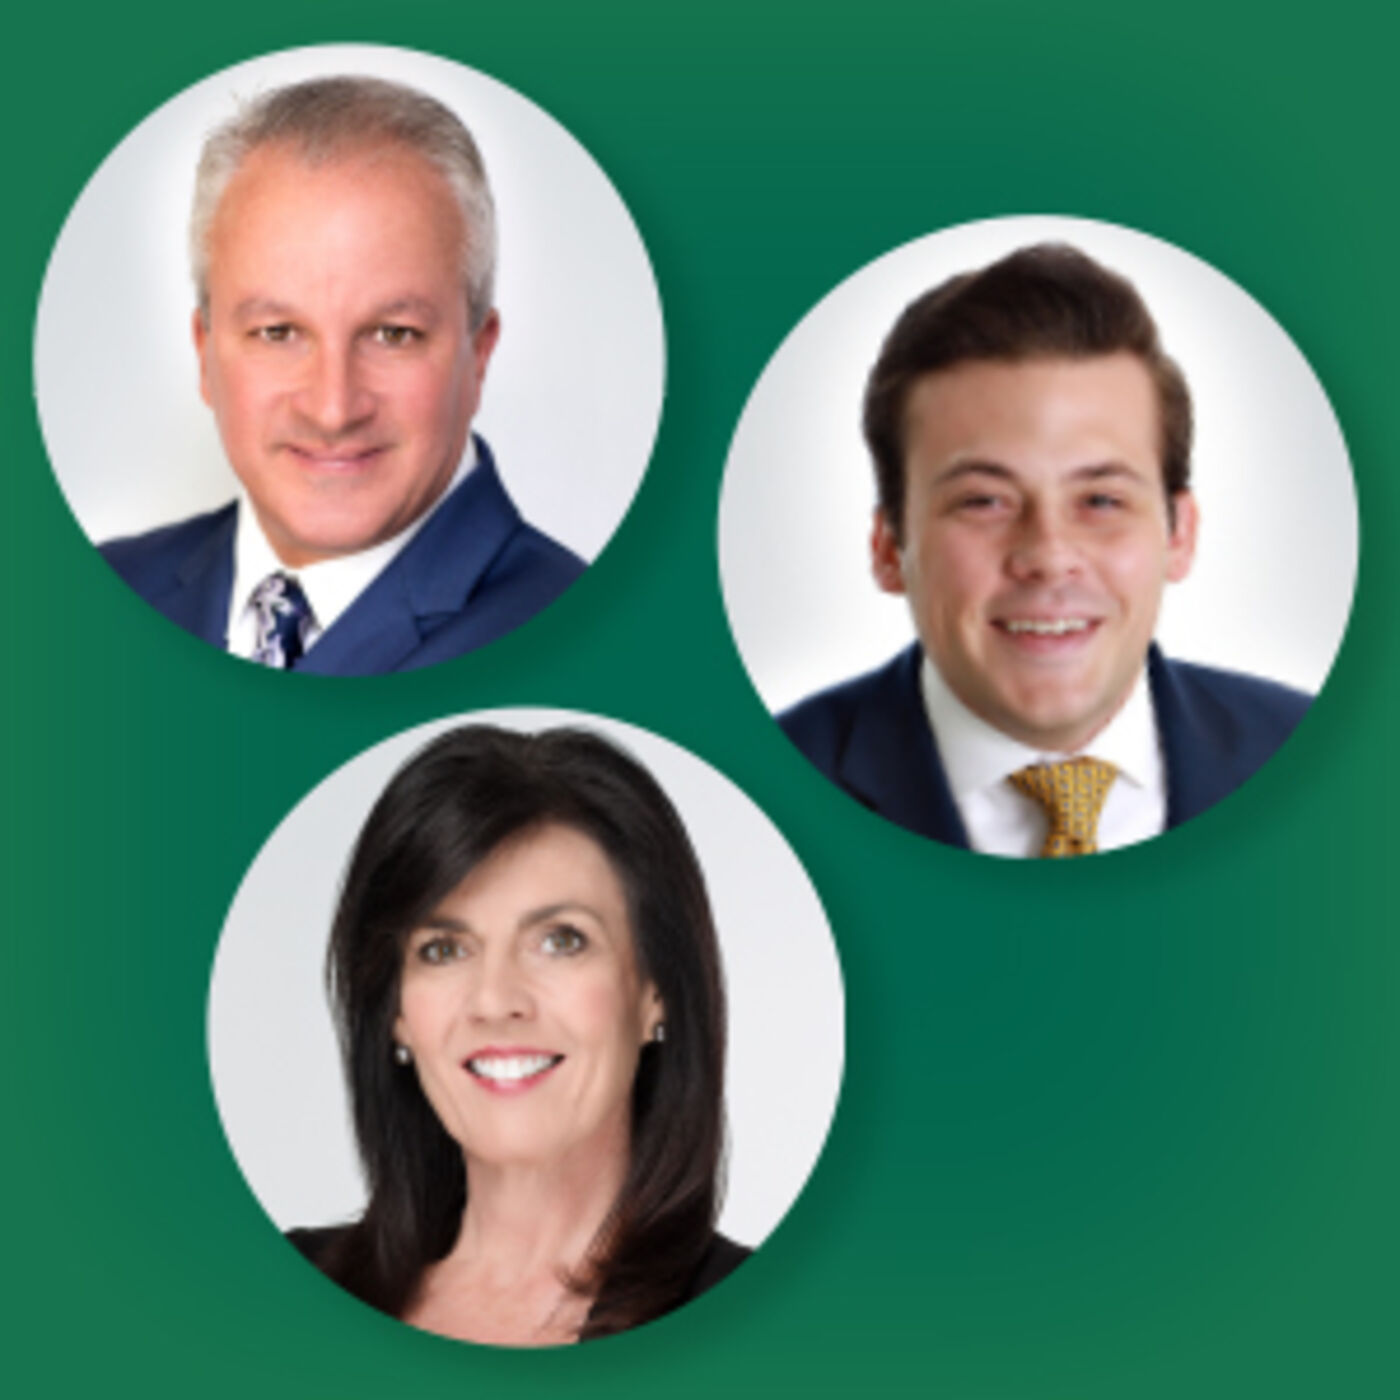 Evolving Business in a Virtual Environment with Jake Forshag, Renee Williams and Louis Barberio